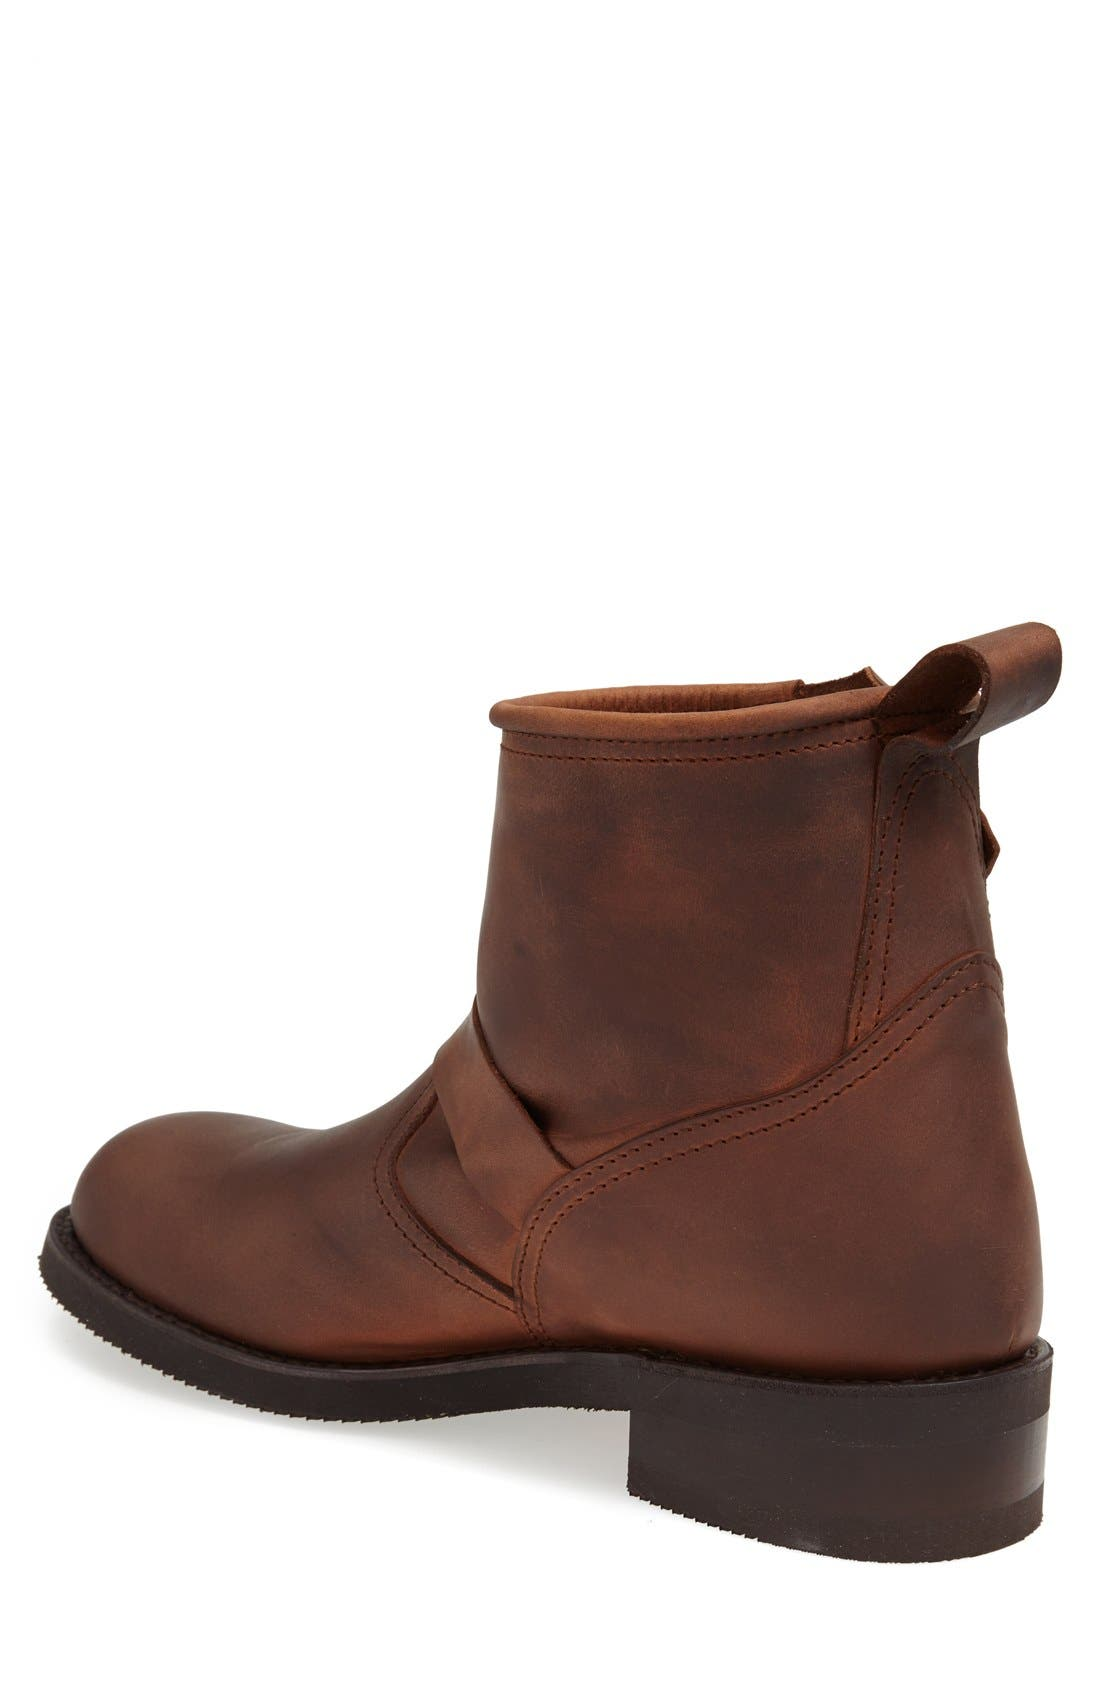 'Engineer' Harness Boot,                             Alternate thumbnail 2, color,                             Brown